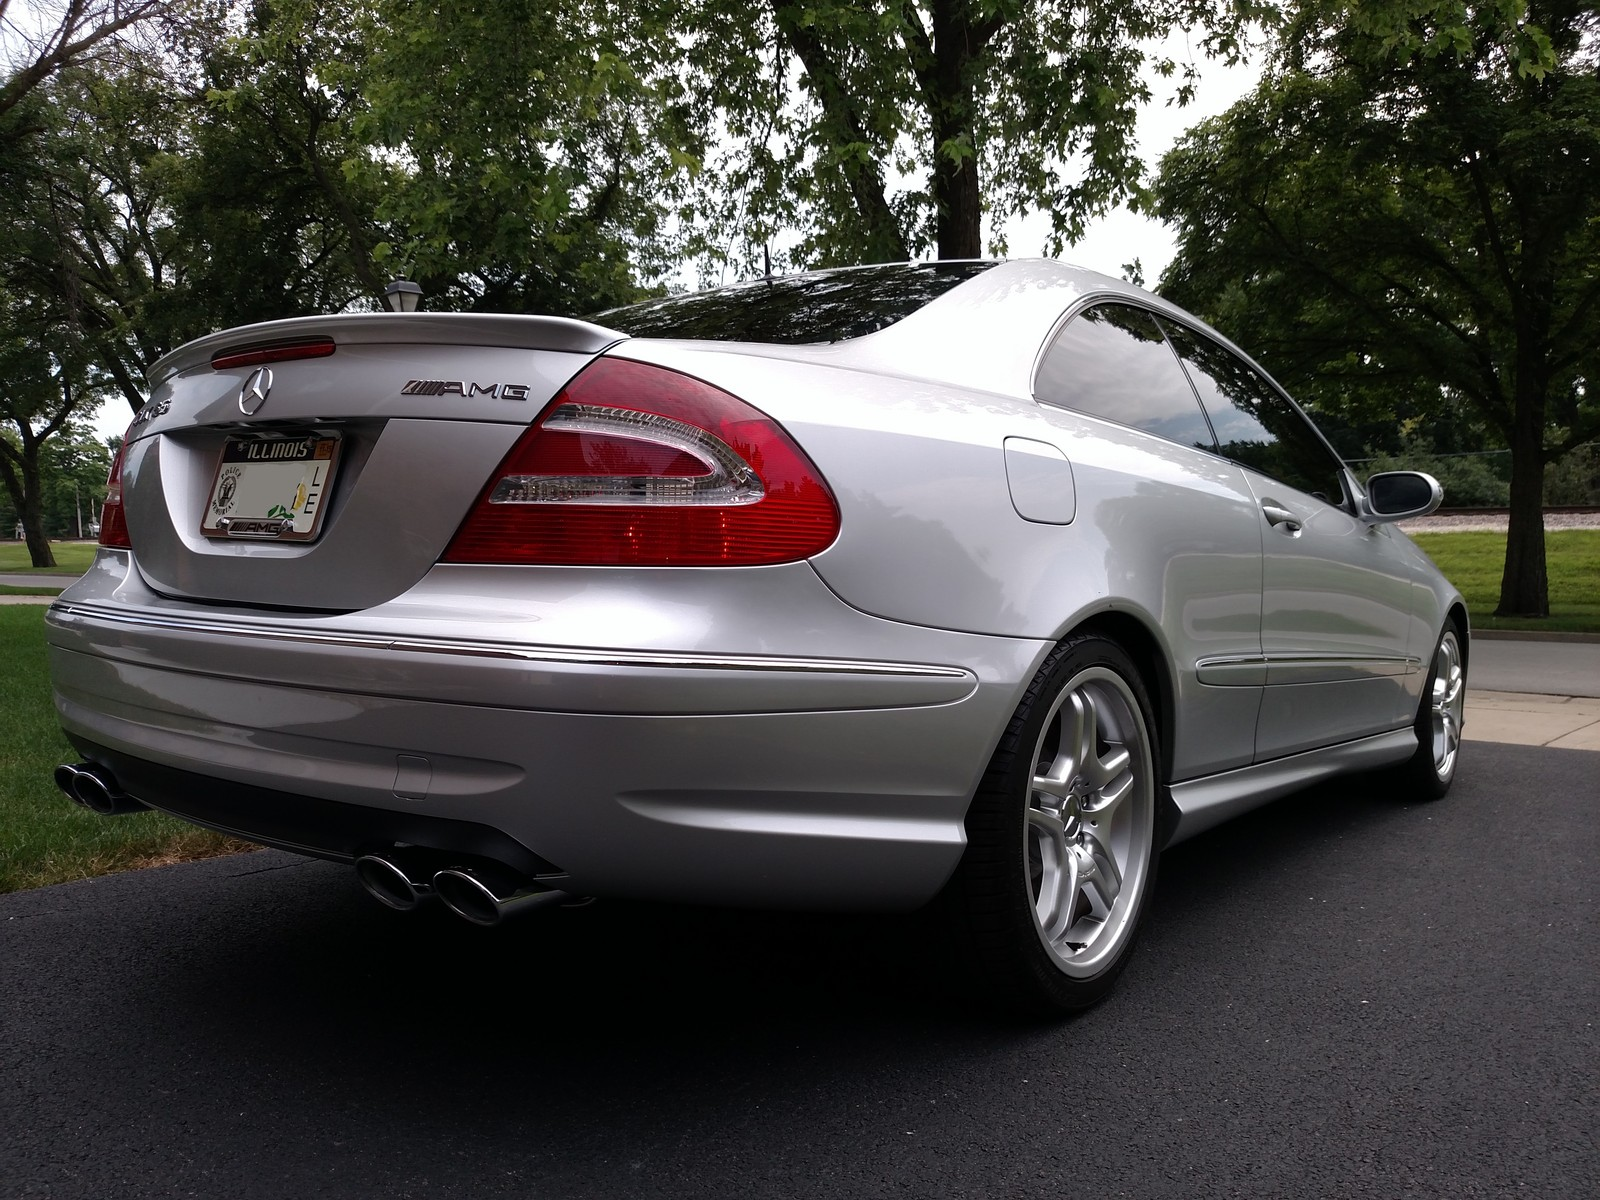 Mercedes Extended Warranty >> 2005 Mercedes-Benz CLK55 AMG Coupe 1/4 mile trap speeds 0 ...